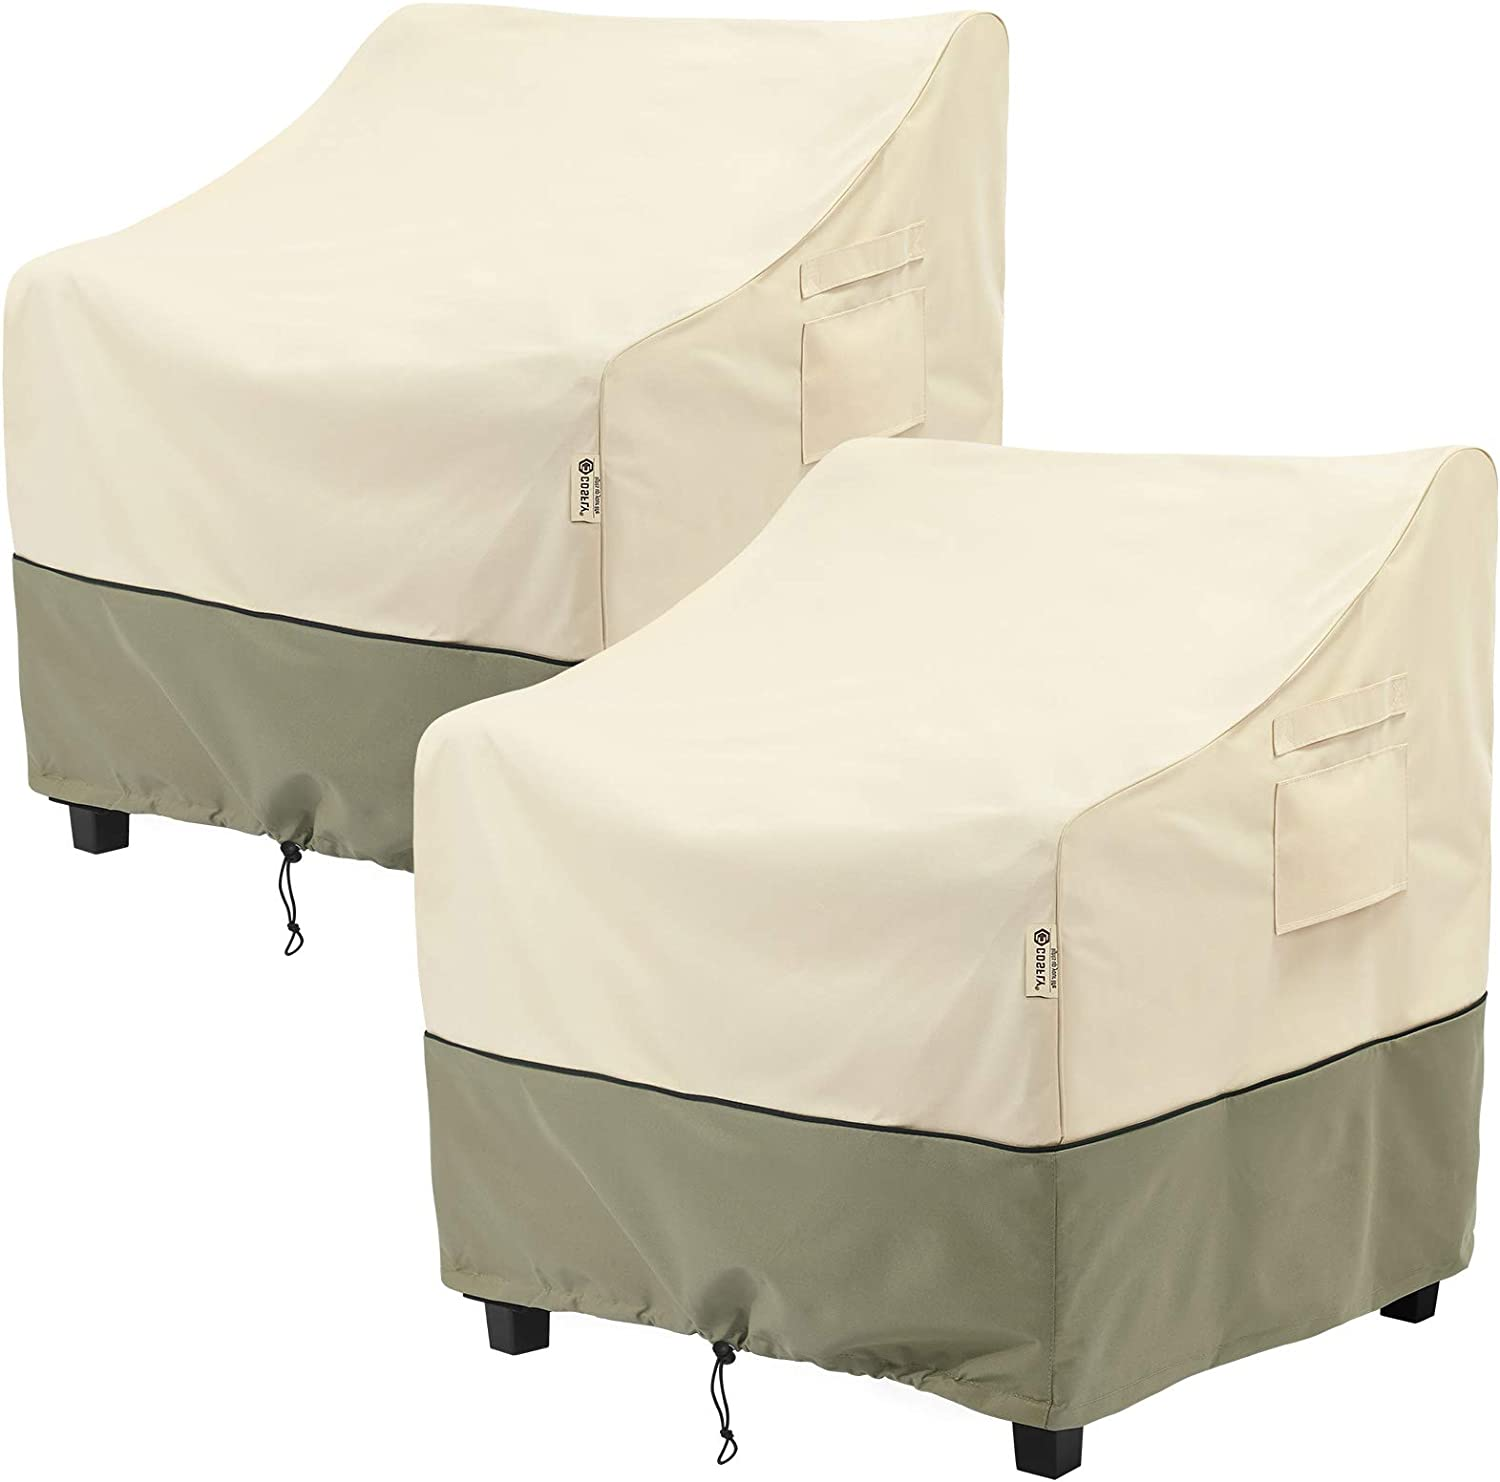 Lawn Furnitures Covers Fits up to 33W x 34D x 31H inches 2 Pack Lounge Deep Seat Cover COSFLY Outdoor Furniture Patio Chair Covers Waterproof Clearance